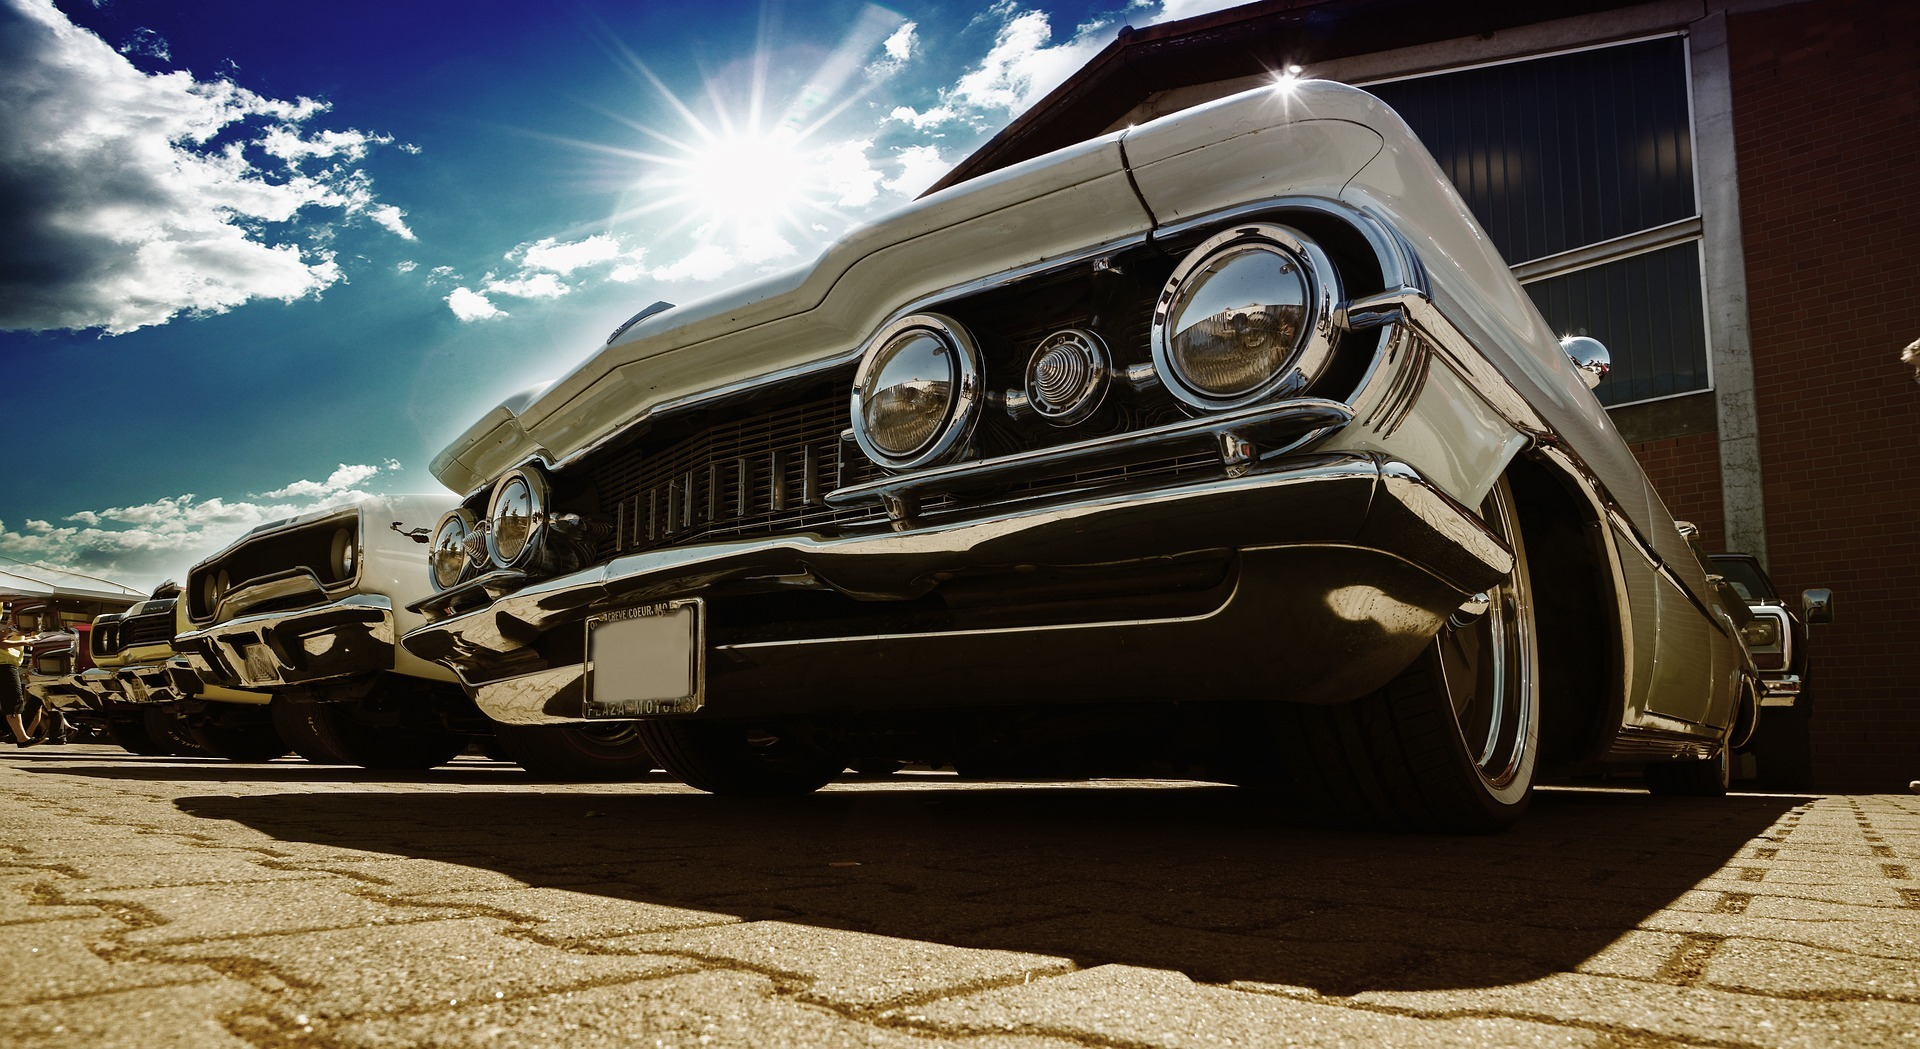 Parked Oldtimers in Clinton, Maryland - GoodwillCarDonation.org